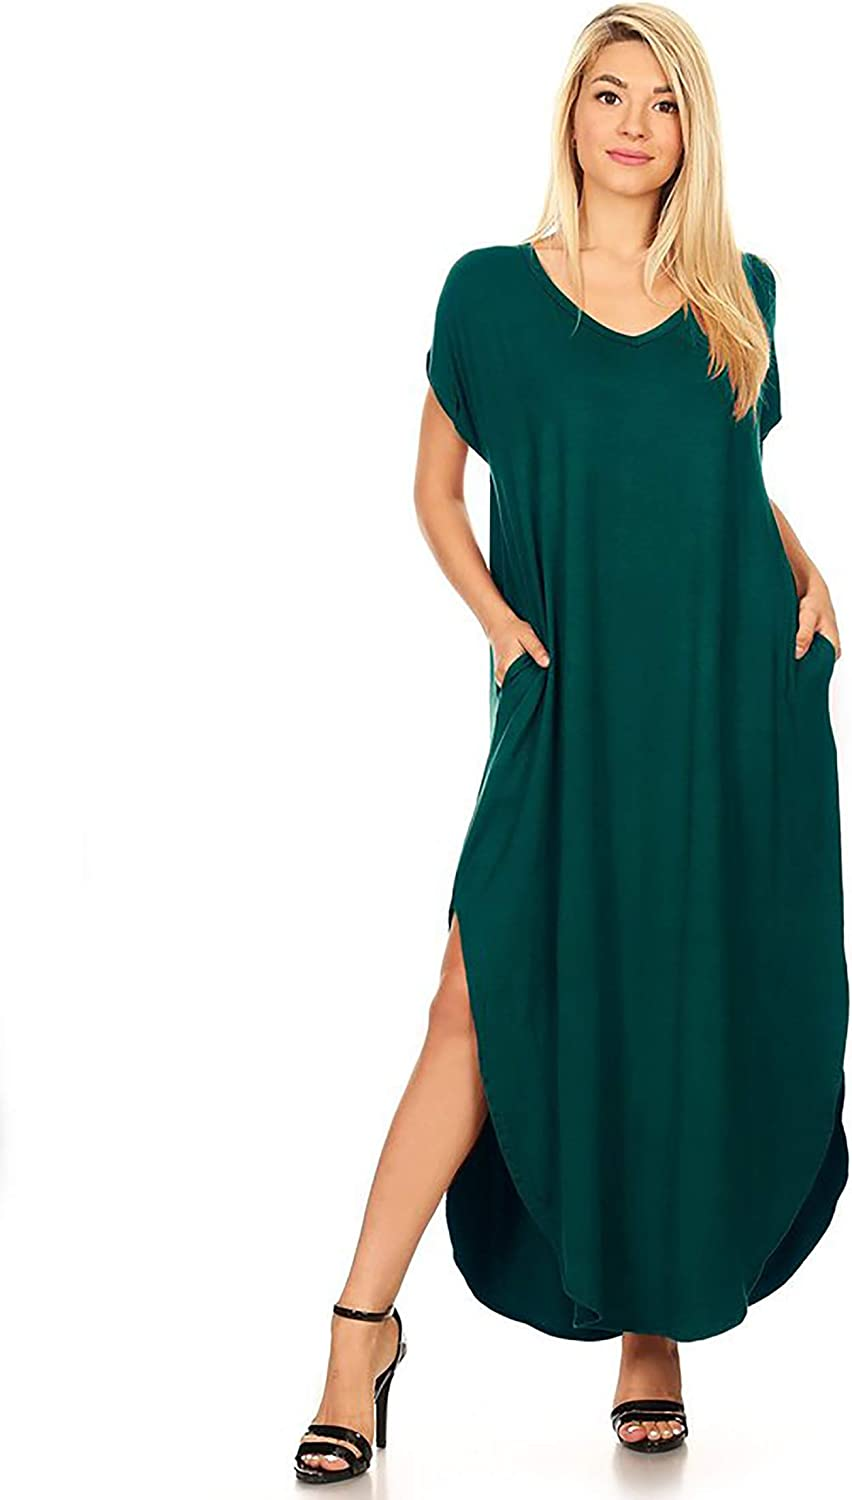 Women's Solid Casual Short Sleeve V-Neck Oversize Pocket Maxi Dress/Made in USA